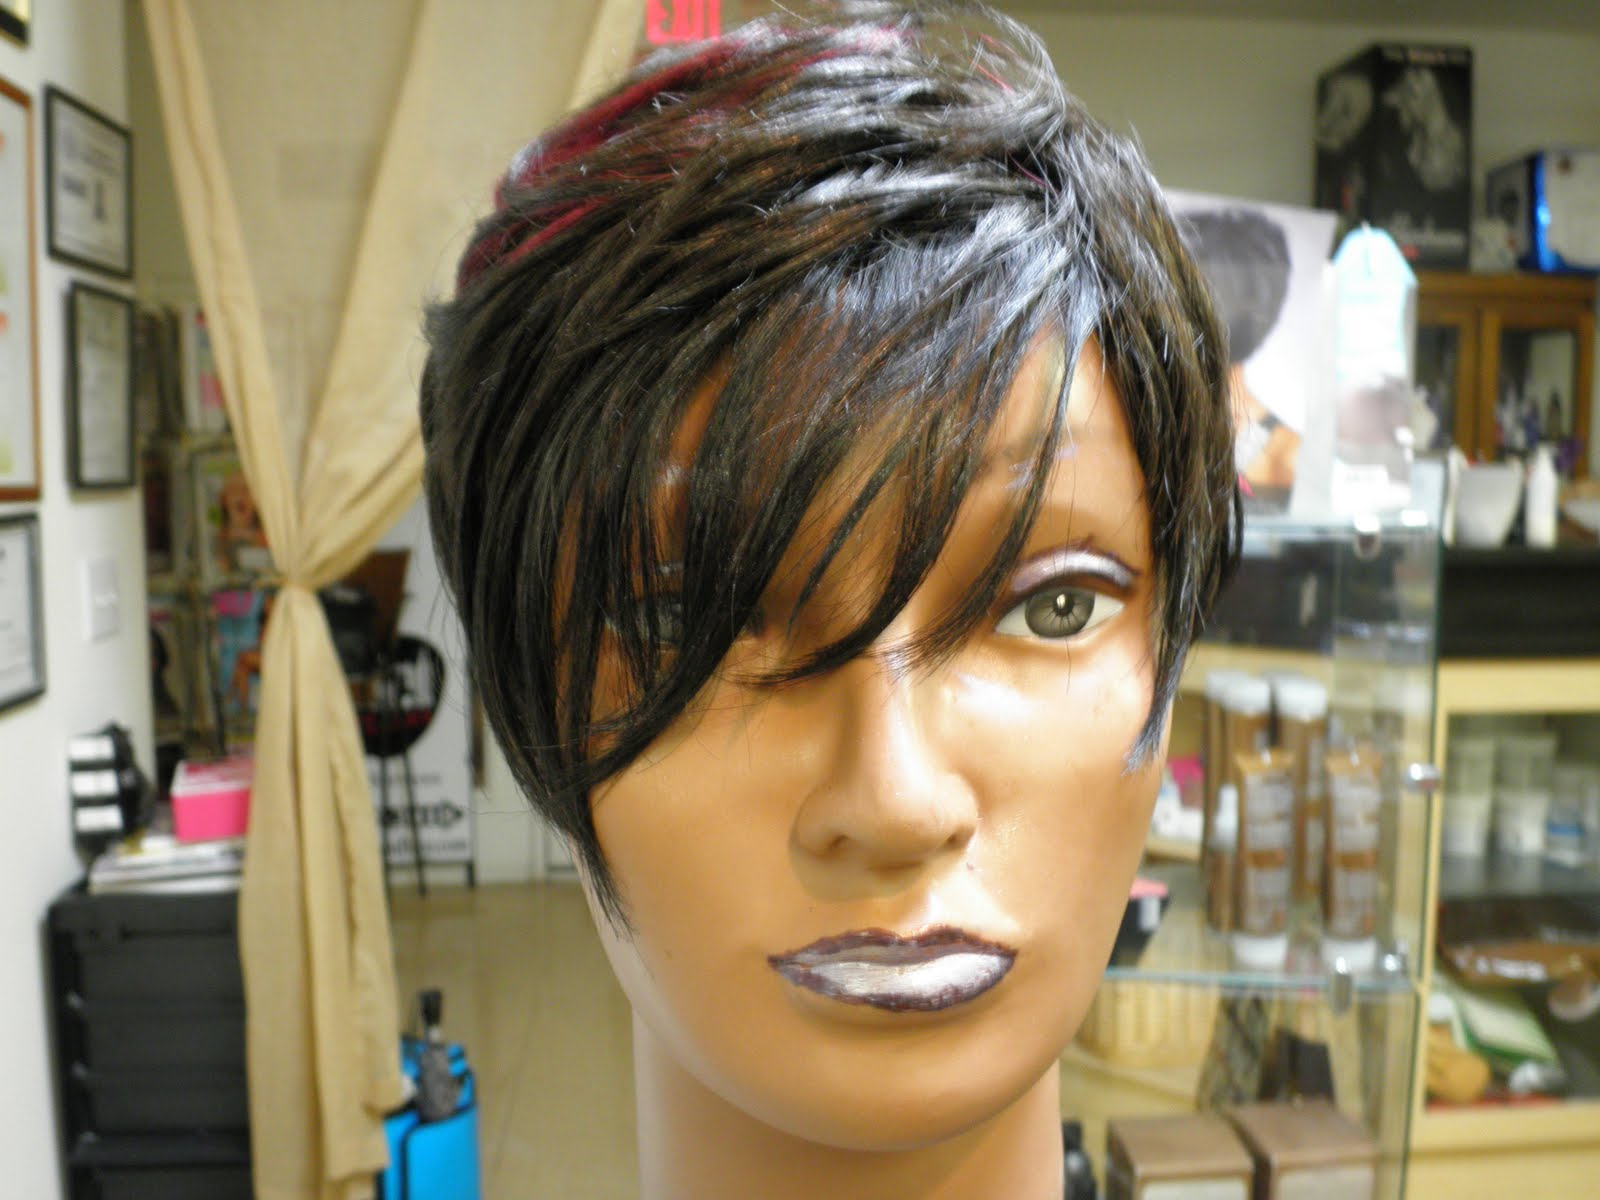 27 piece sew in hairstyles : PhenomenalhairCare: A New Look at the 27 piece quick weave